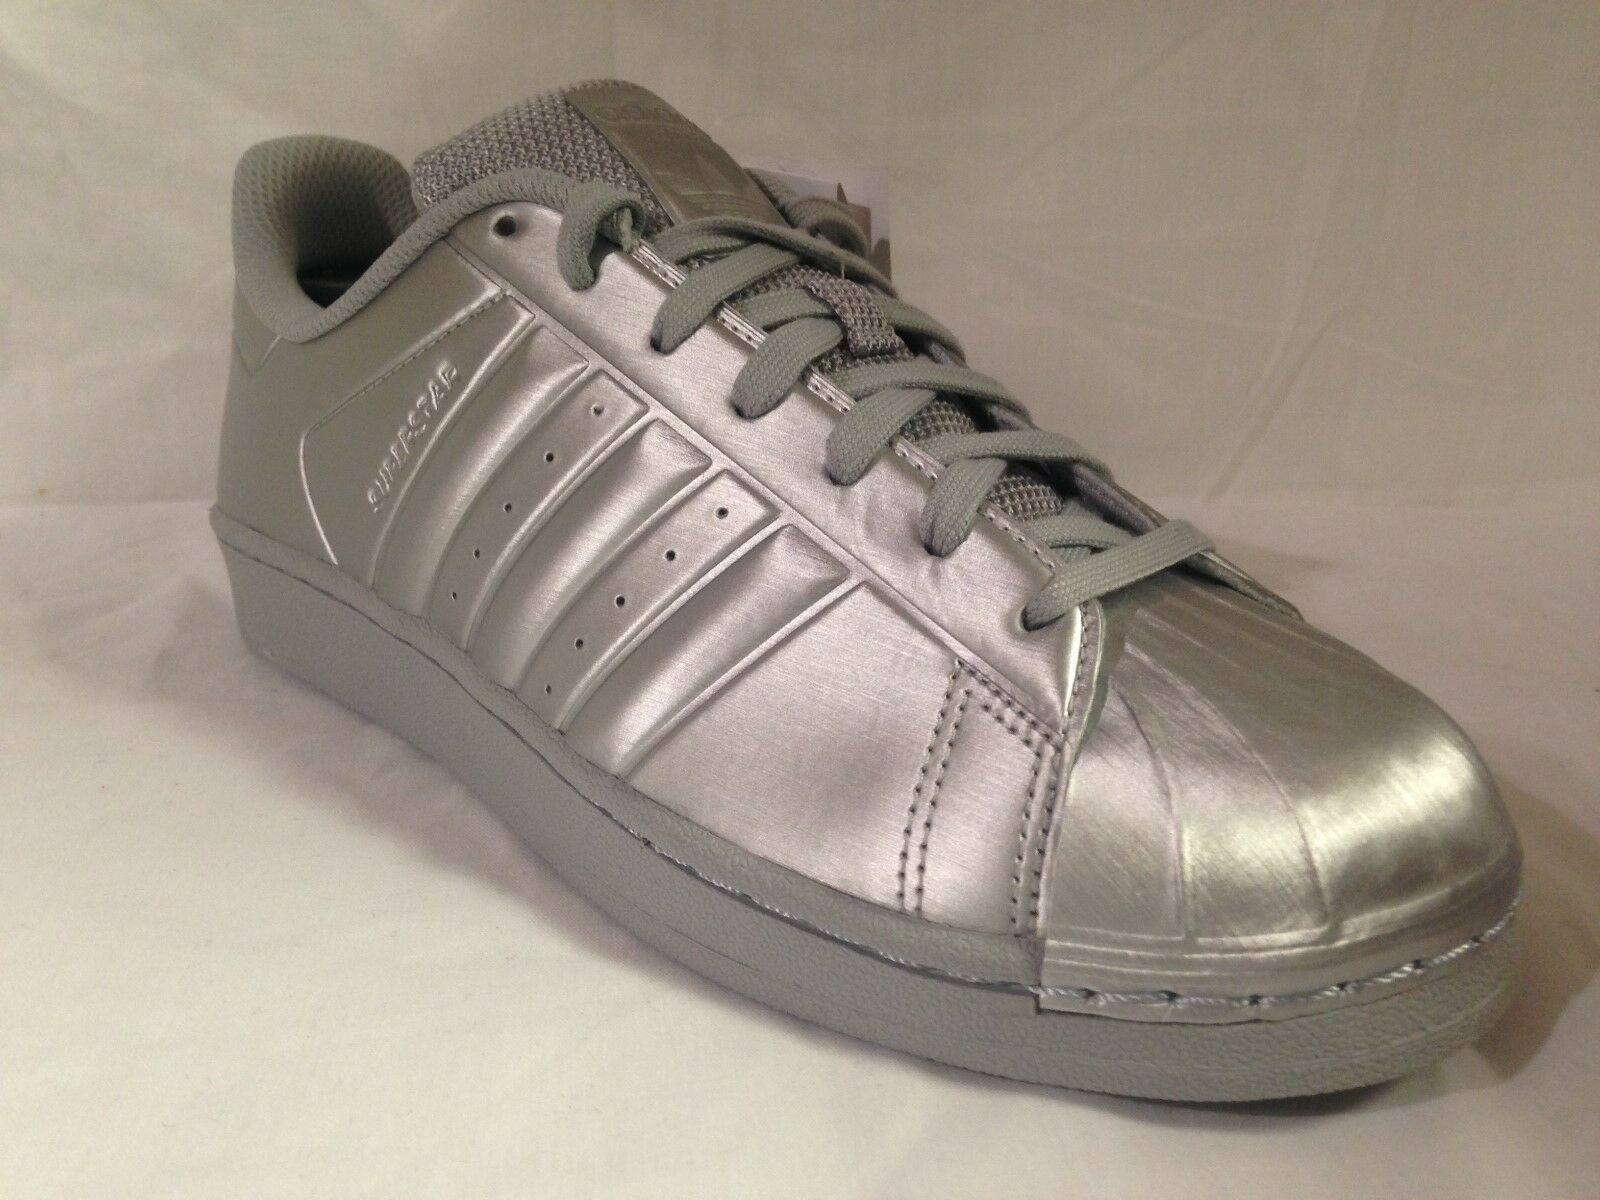 Herren Adidas Superstar Metallic Silver/Silver BB1461 Gr  es: UK 8_8.5_9_9.5